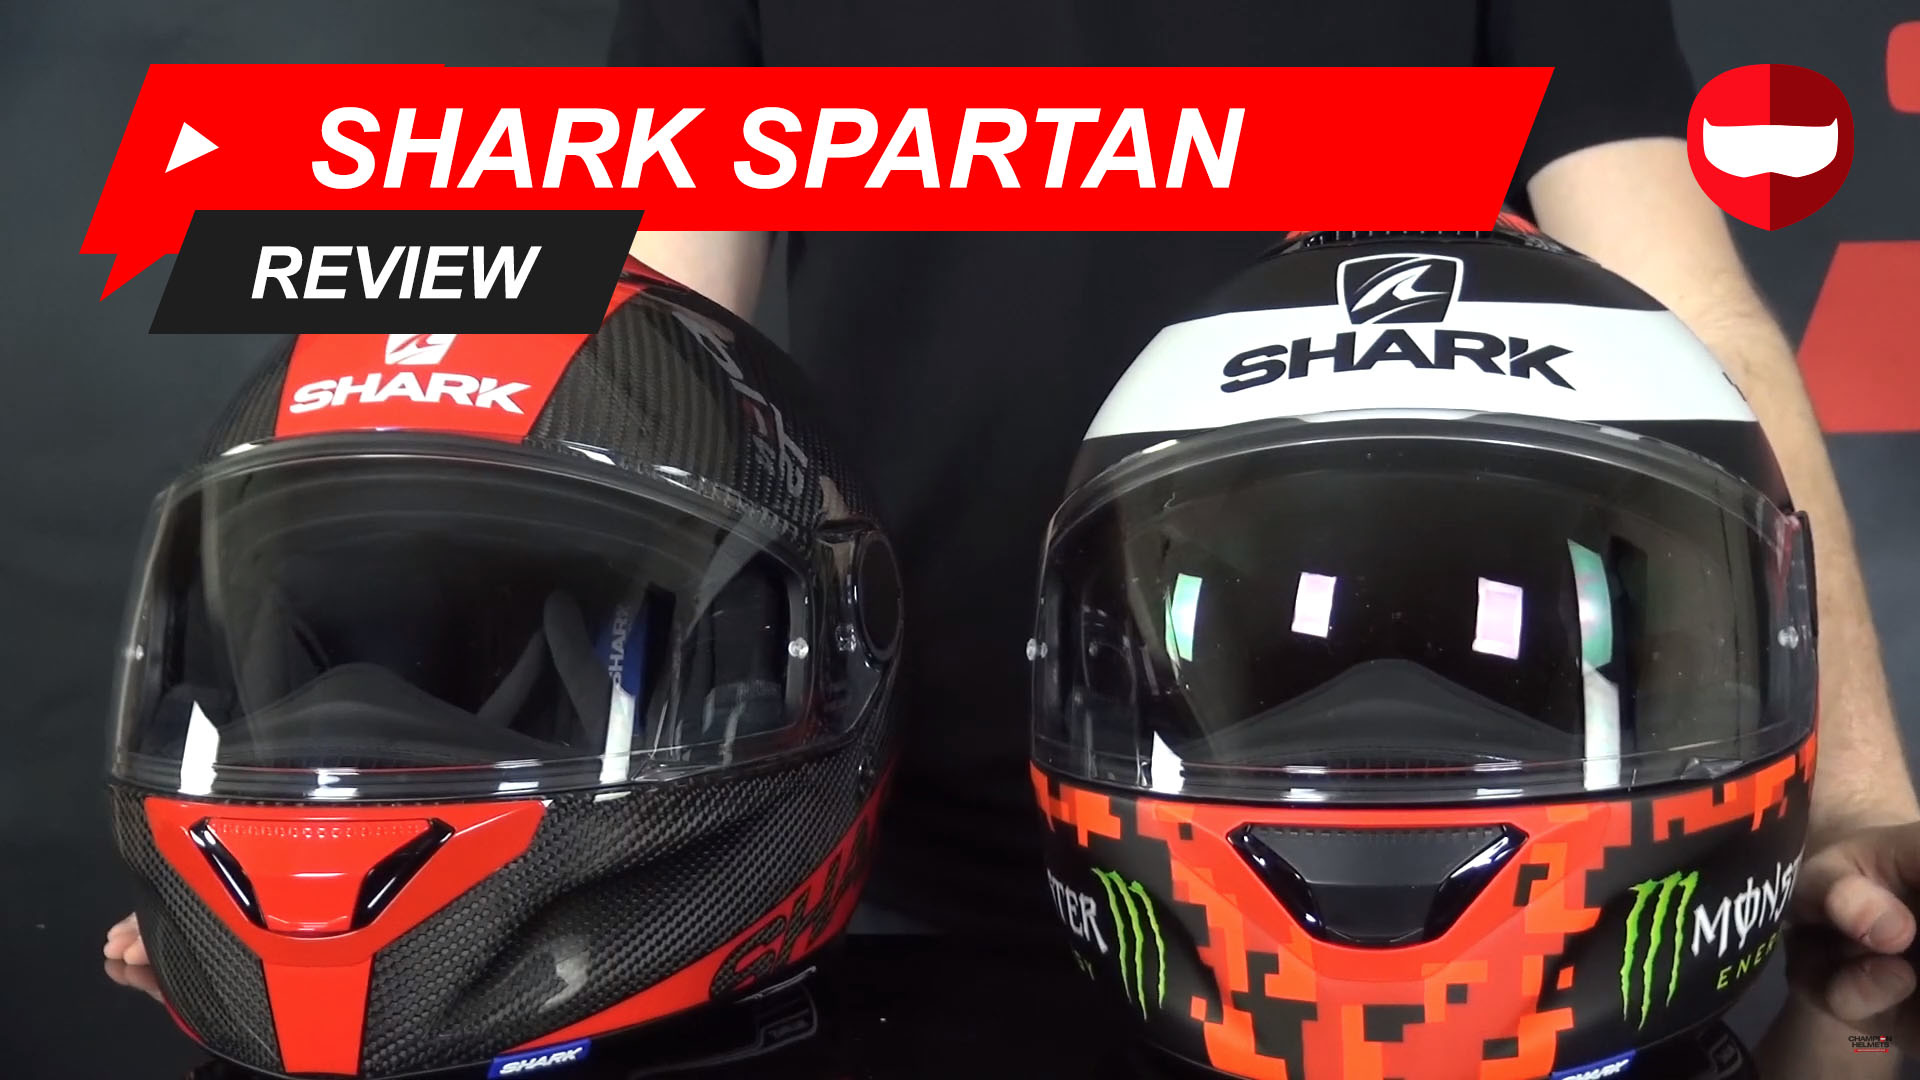 Our Review of the Shark Spartan and Spartan Carbon